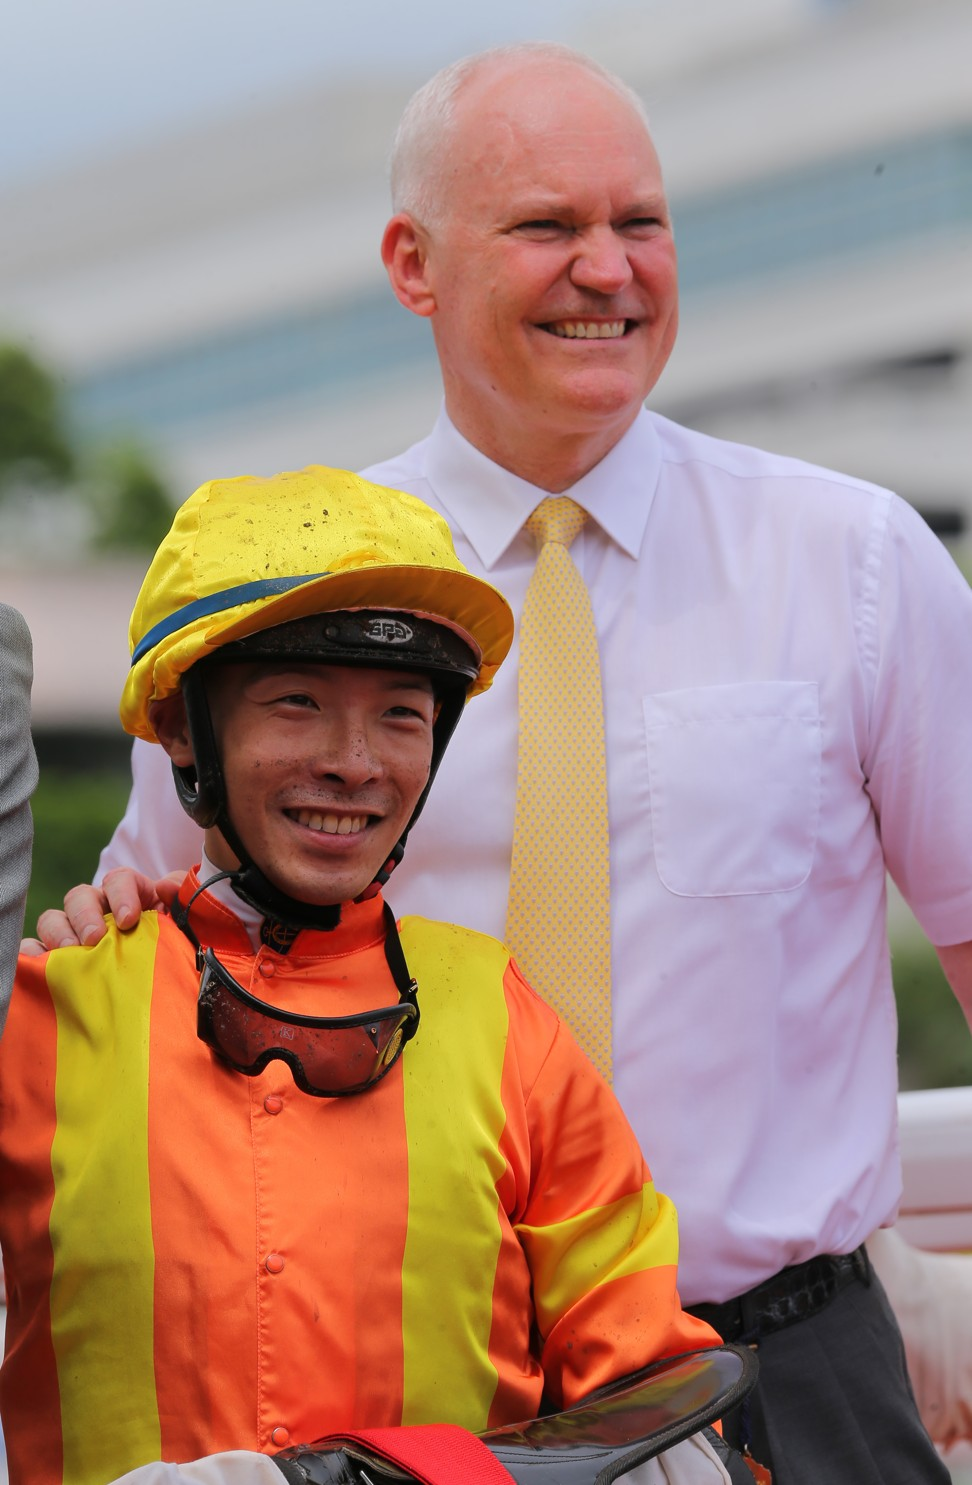 Jockey Ben So and trainer Ben So after the win of High Rev.